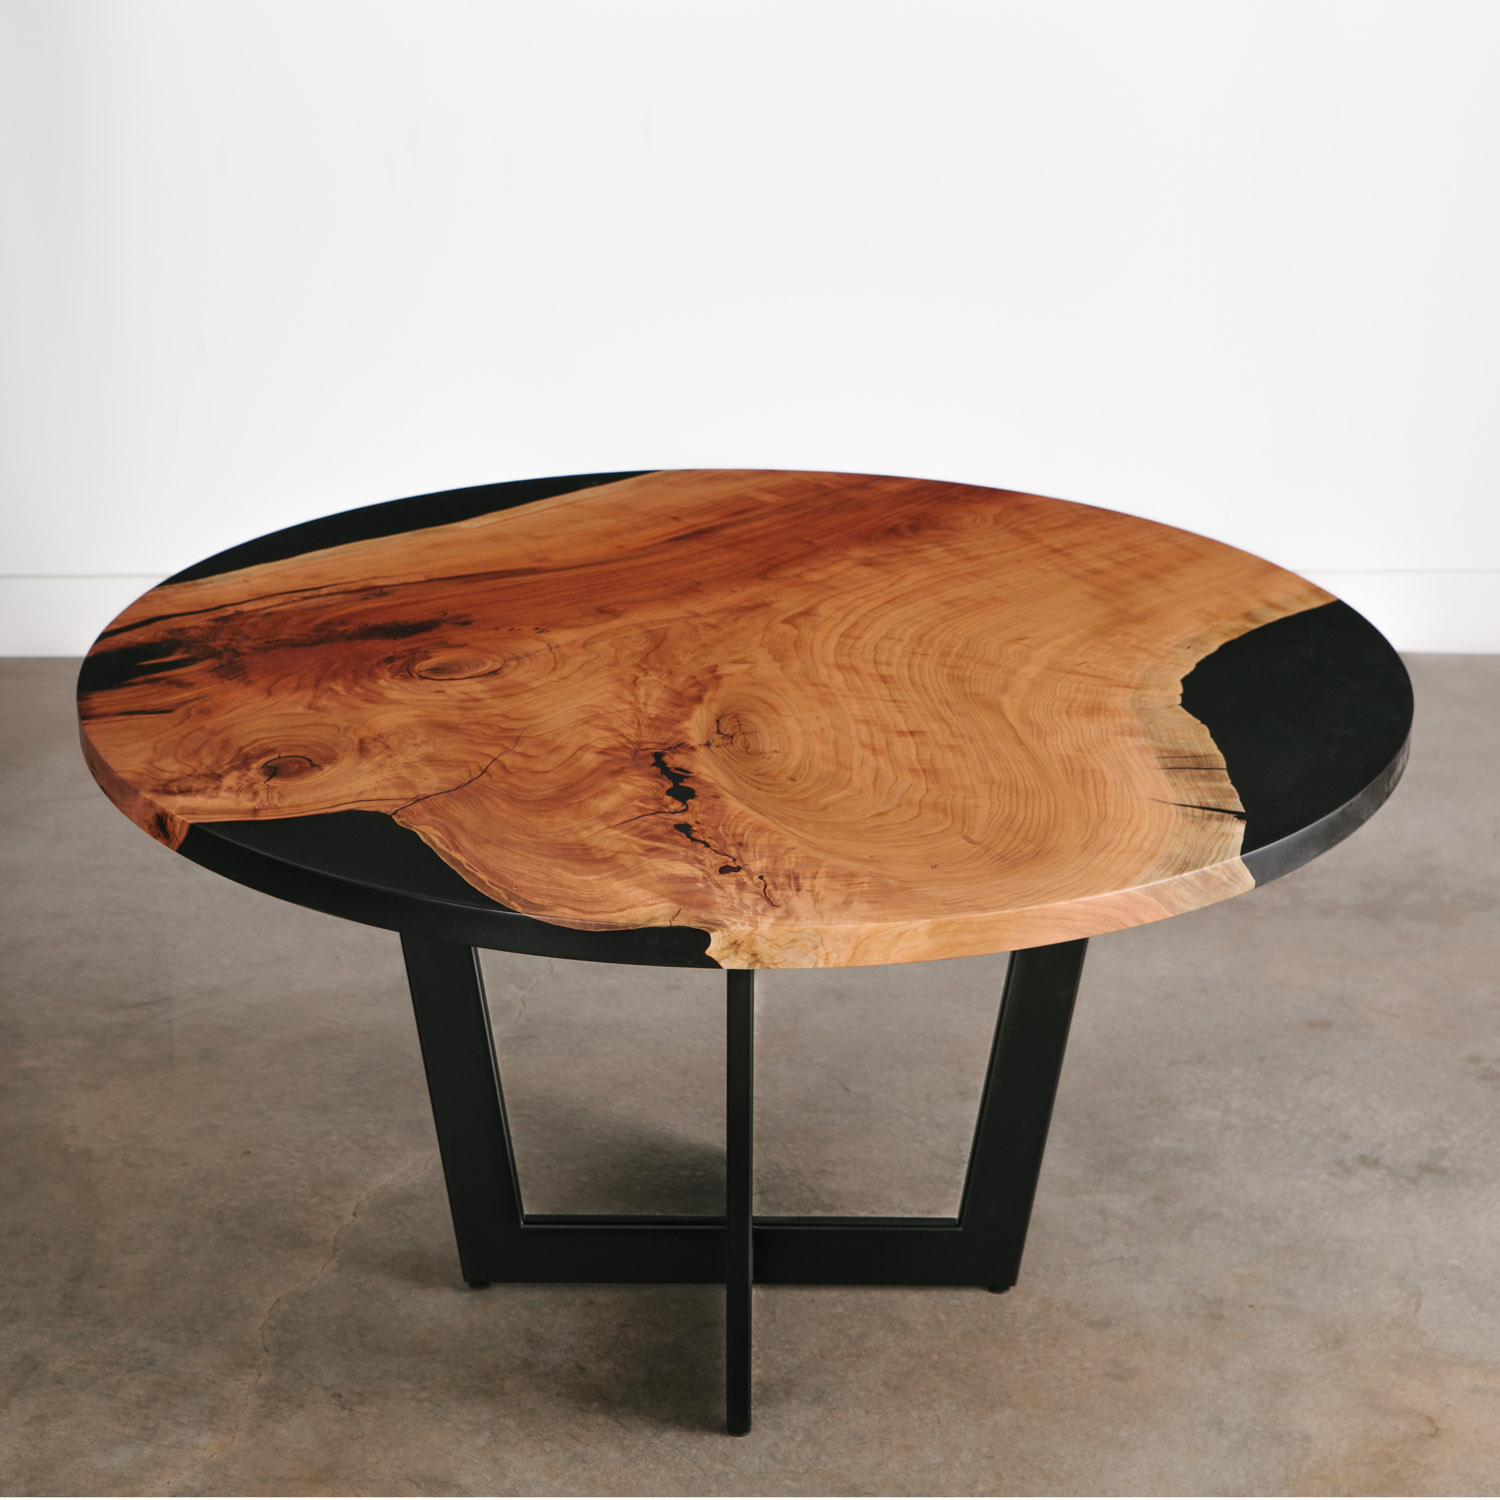 Cherry Dining Table No 280 Elko Hardwoods Modern Live Edge Furniture Dining Coffee Tables Desks Benches